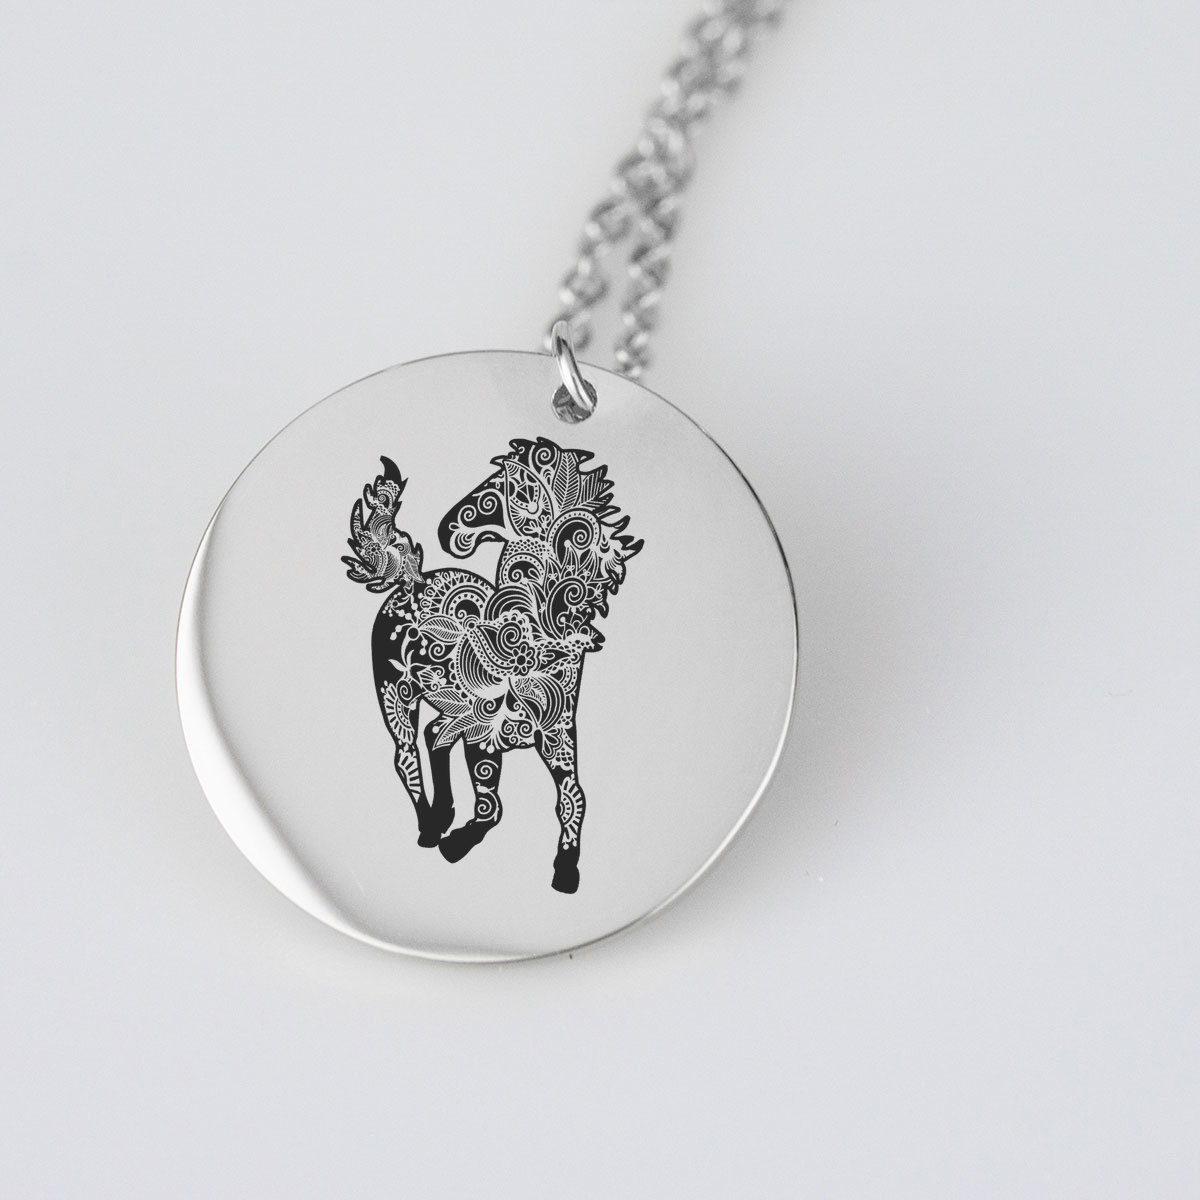 Wild Horse Silhouette Charm Necklace